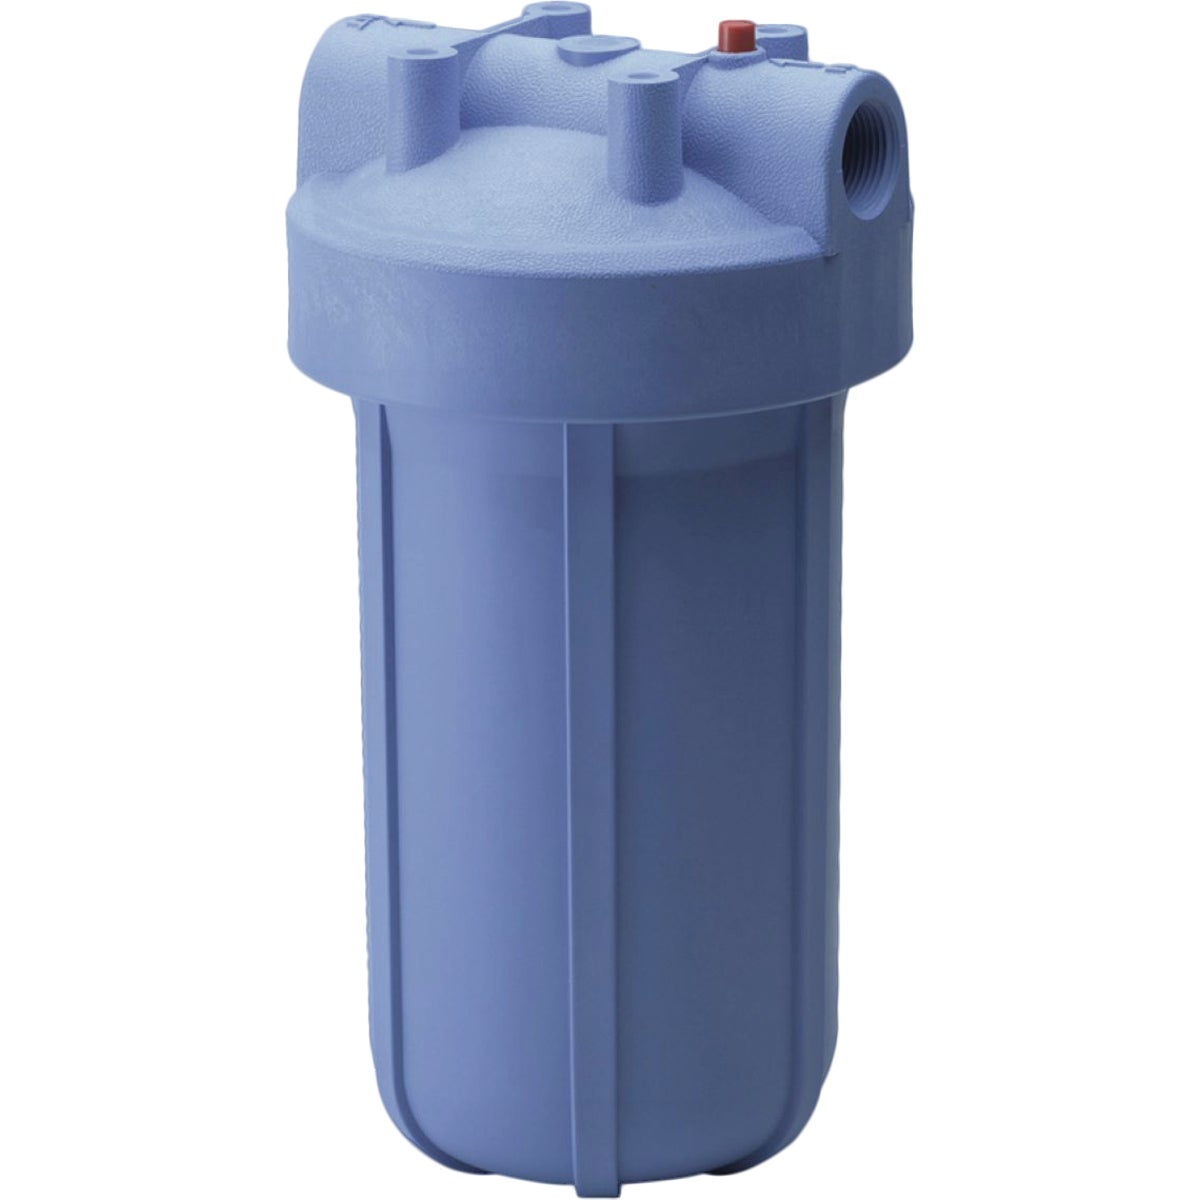 WATER FILTER - HD950A by Culligan